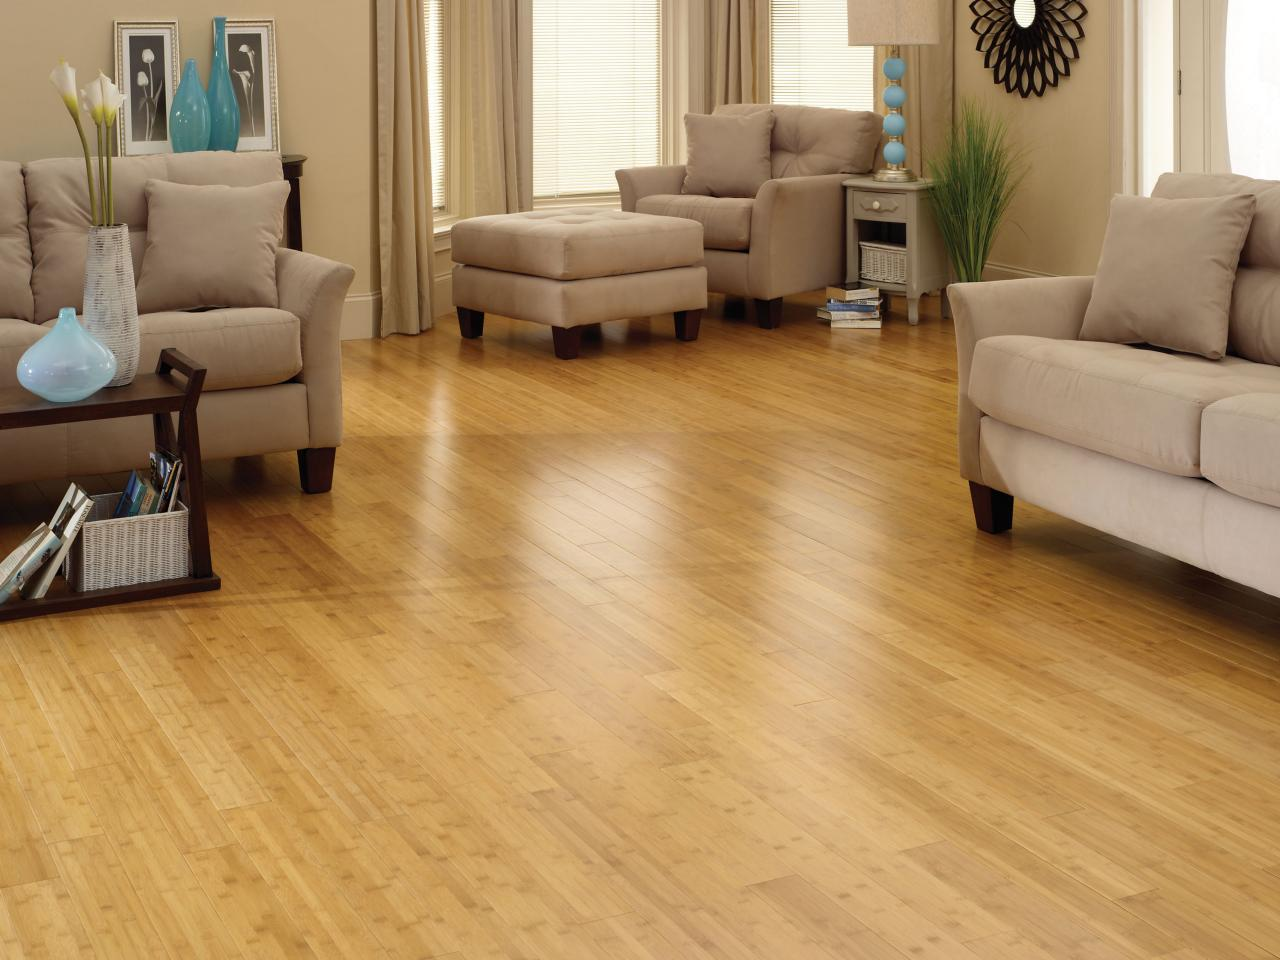 Flooring of grass bamboo hgtv for Flooring recommendations